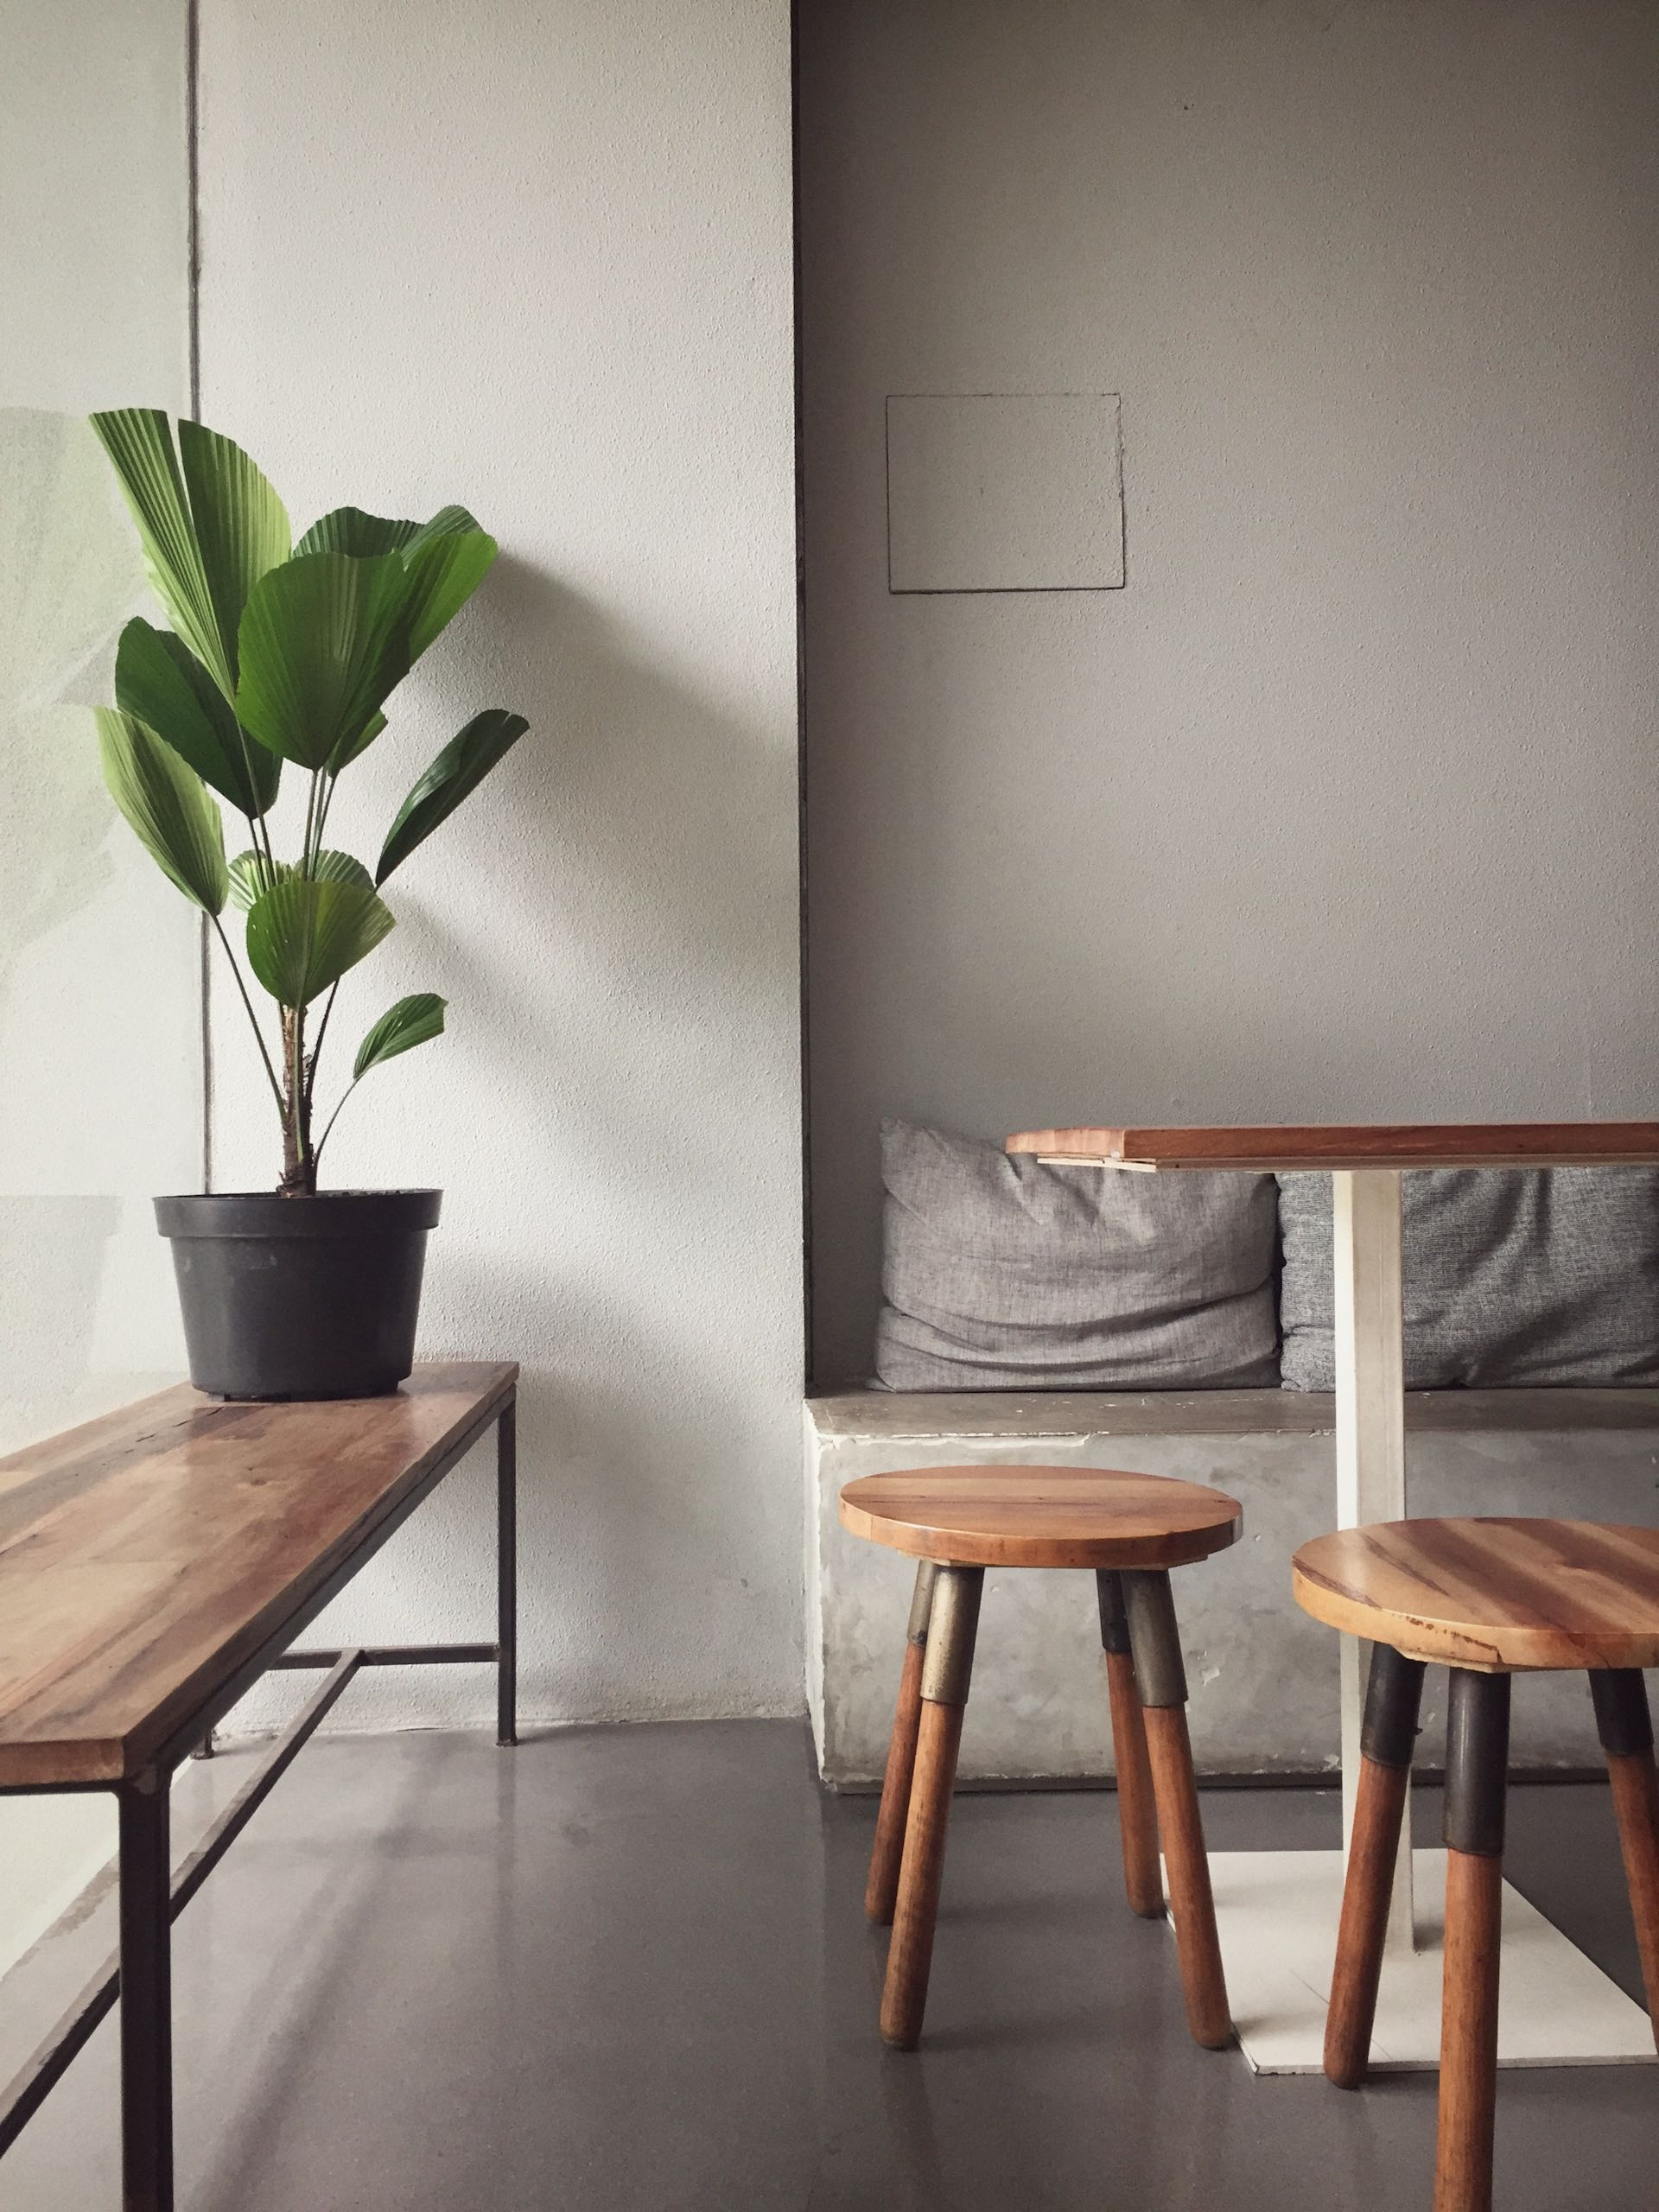 A cozy, empty sitting space that has wooden furniture to eat at or to just sit comfortably by the window.